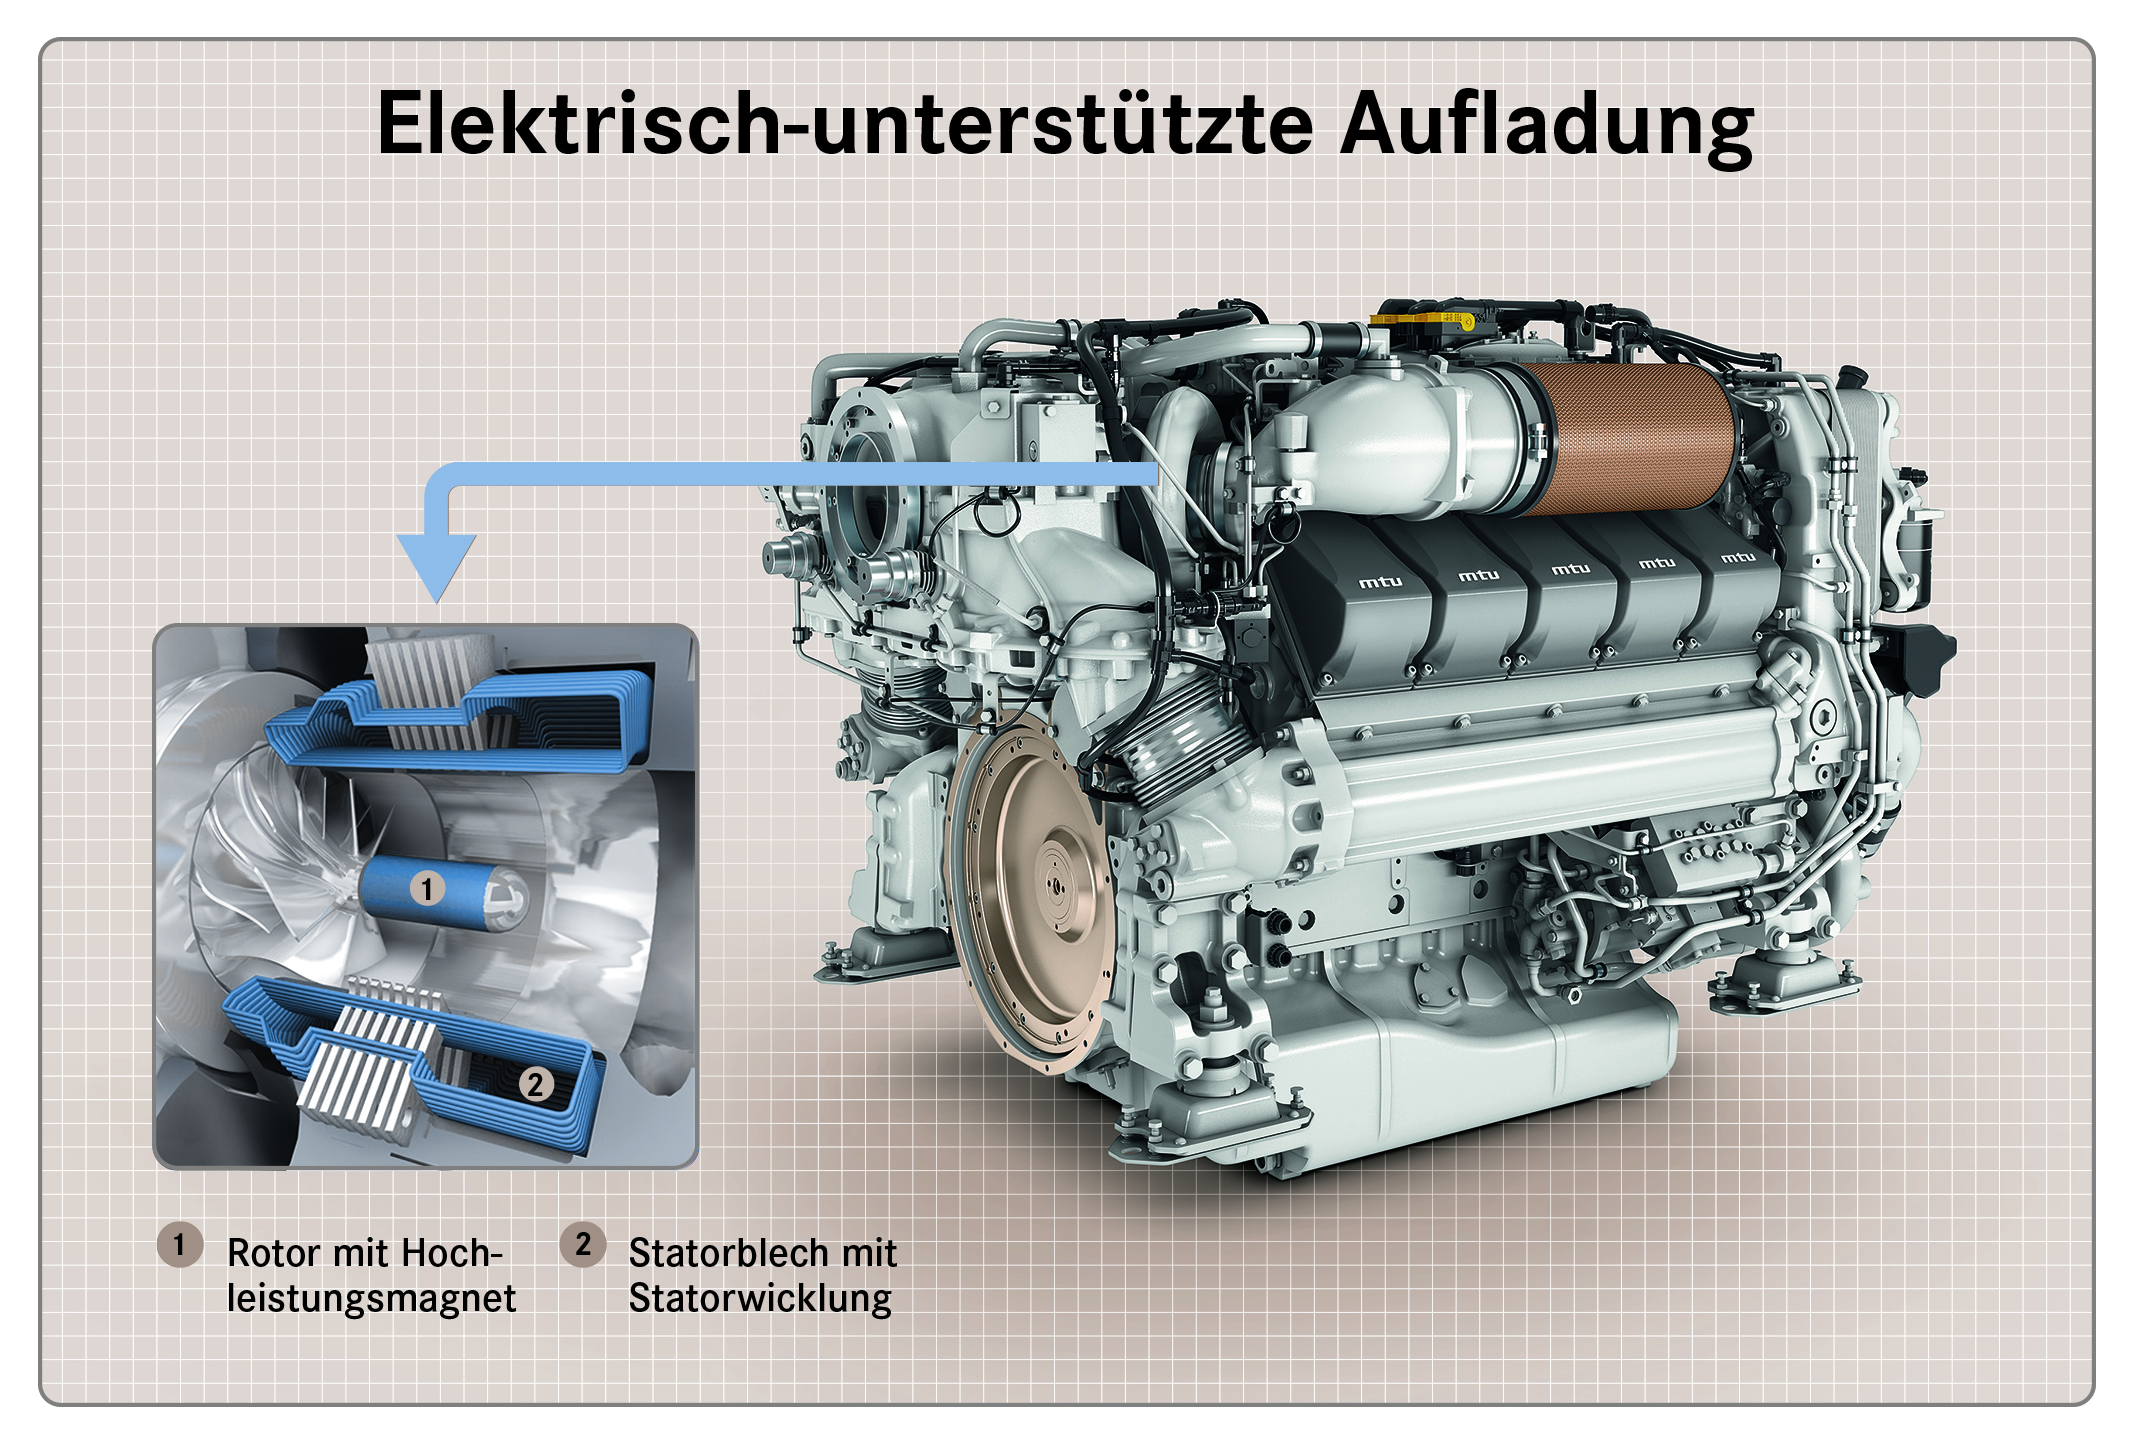 Marinemotor mit Cross-Charger®